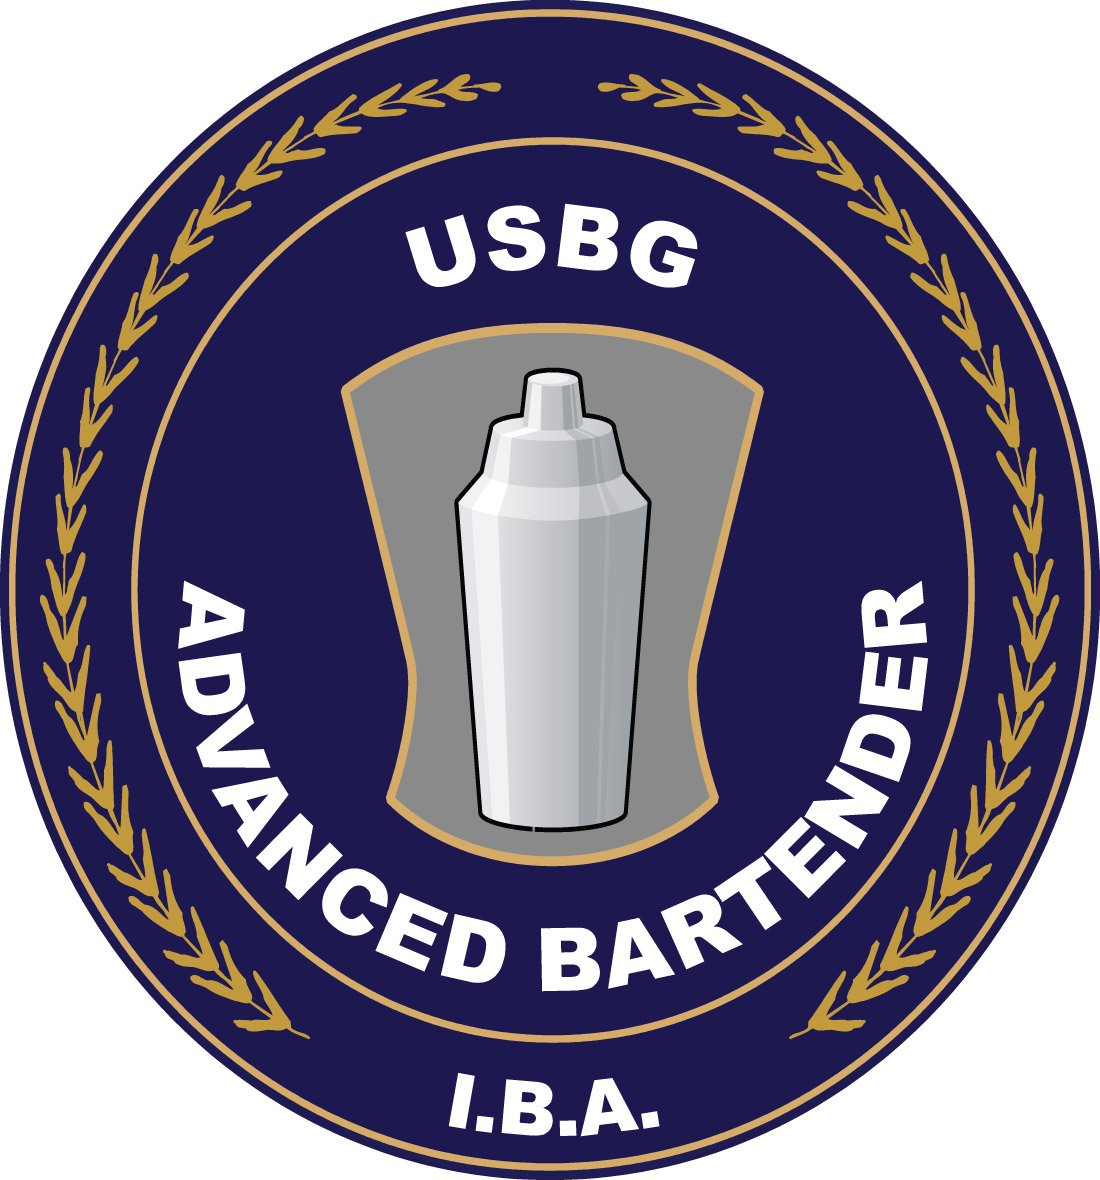 USBG Advanced Bartender Logo